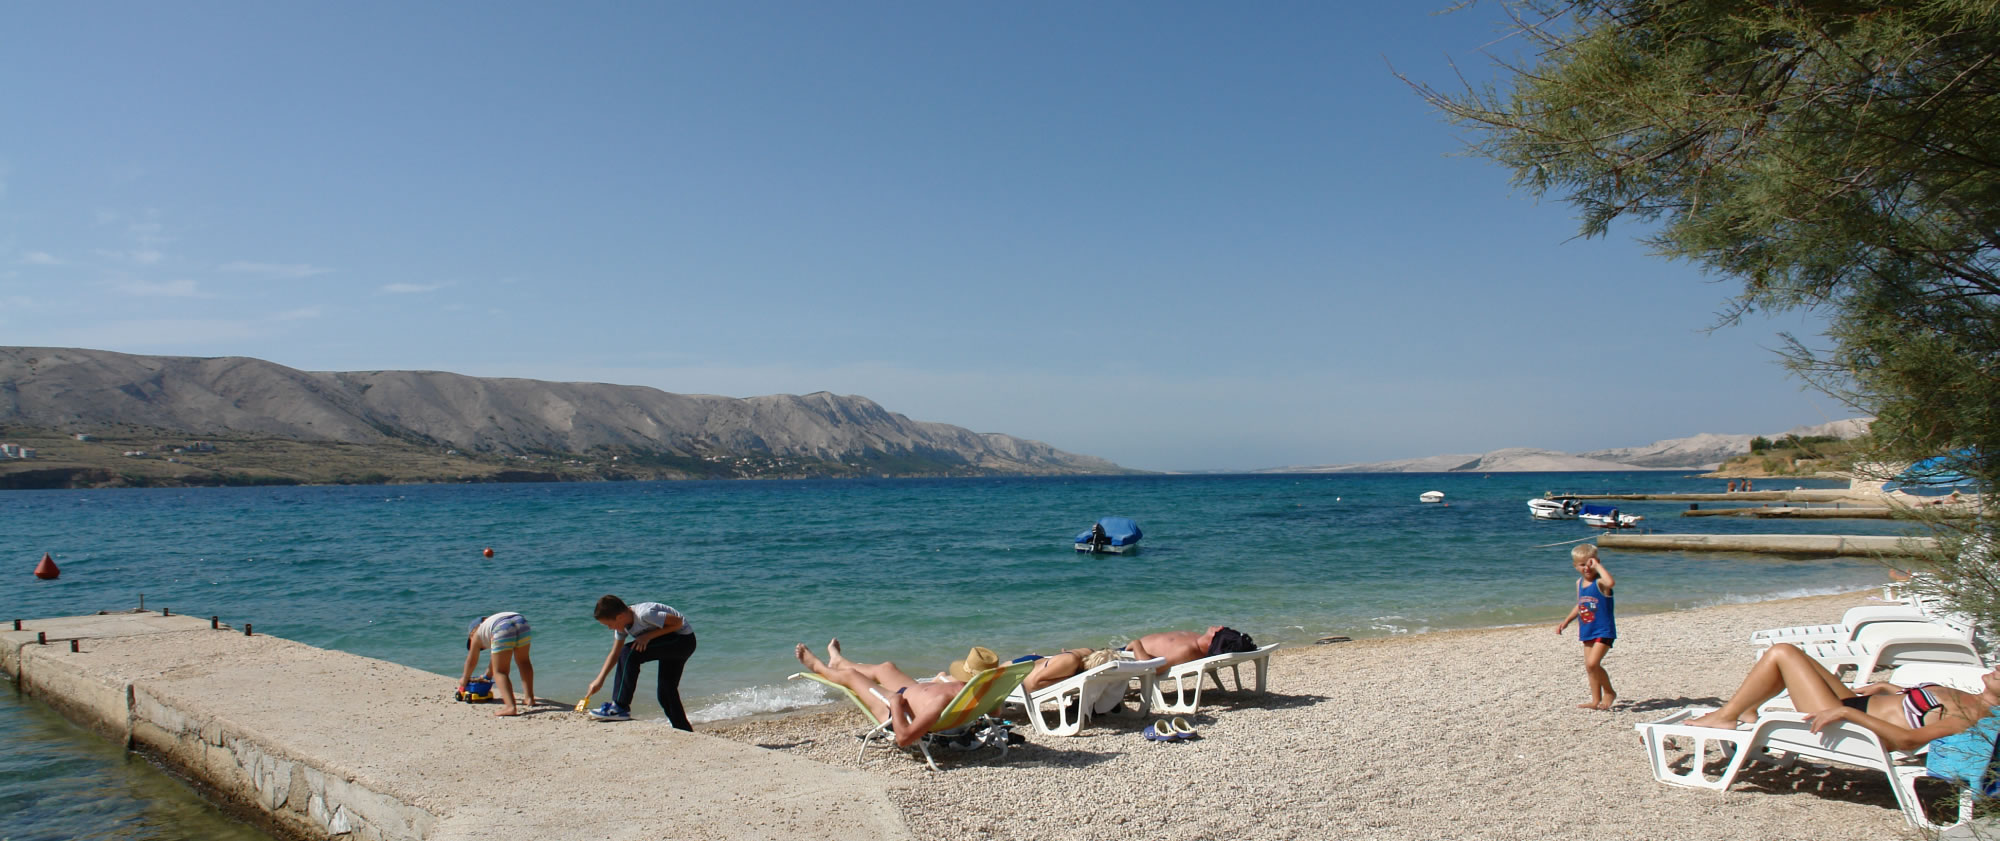 Beach on island of Pag